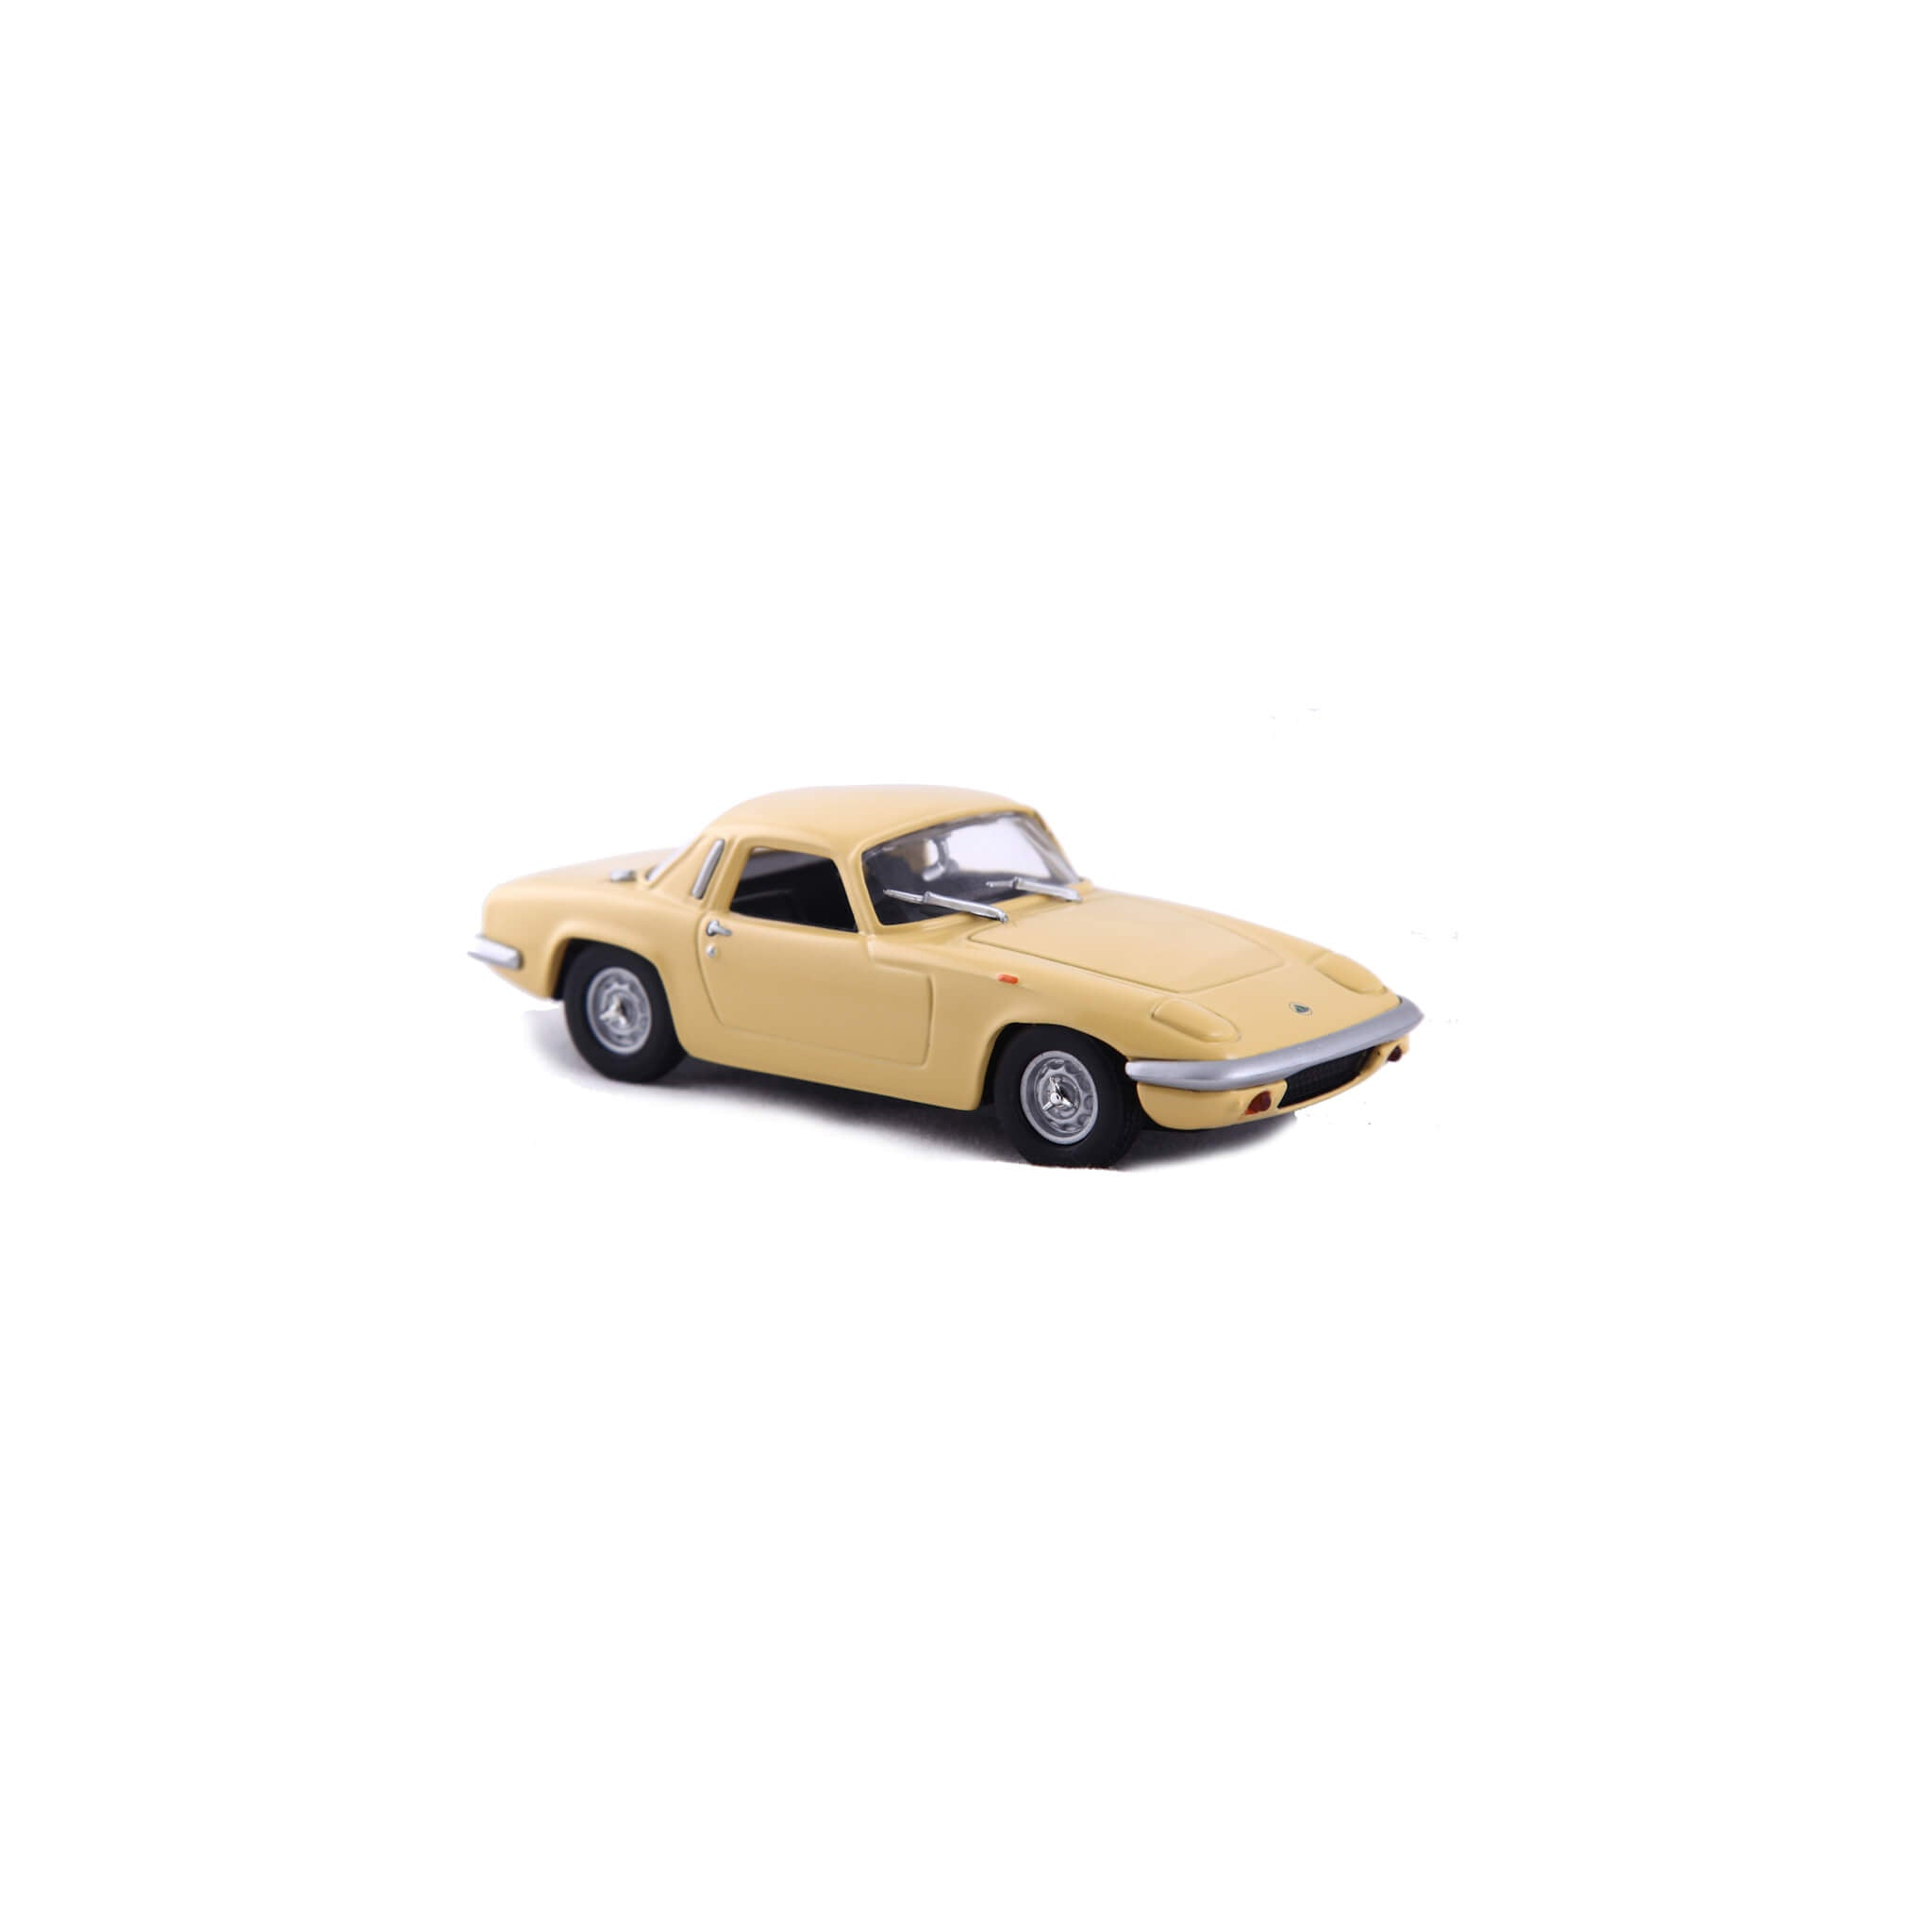 1968 Lotus Elan S4 1:43 Model By Kyosho Model